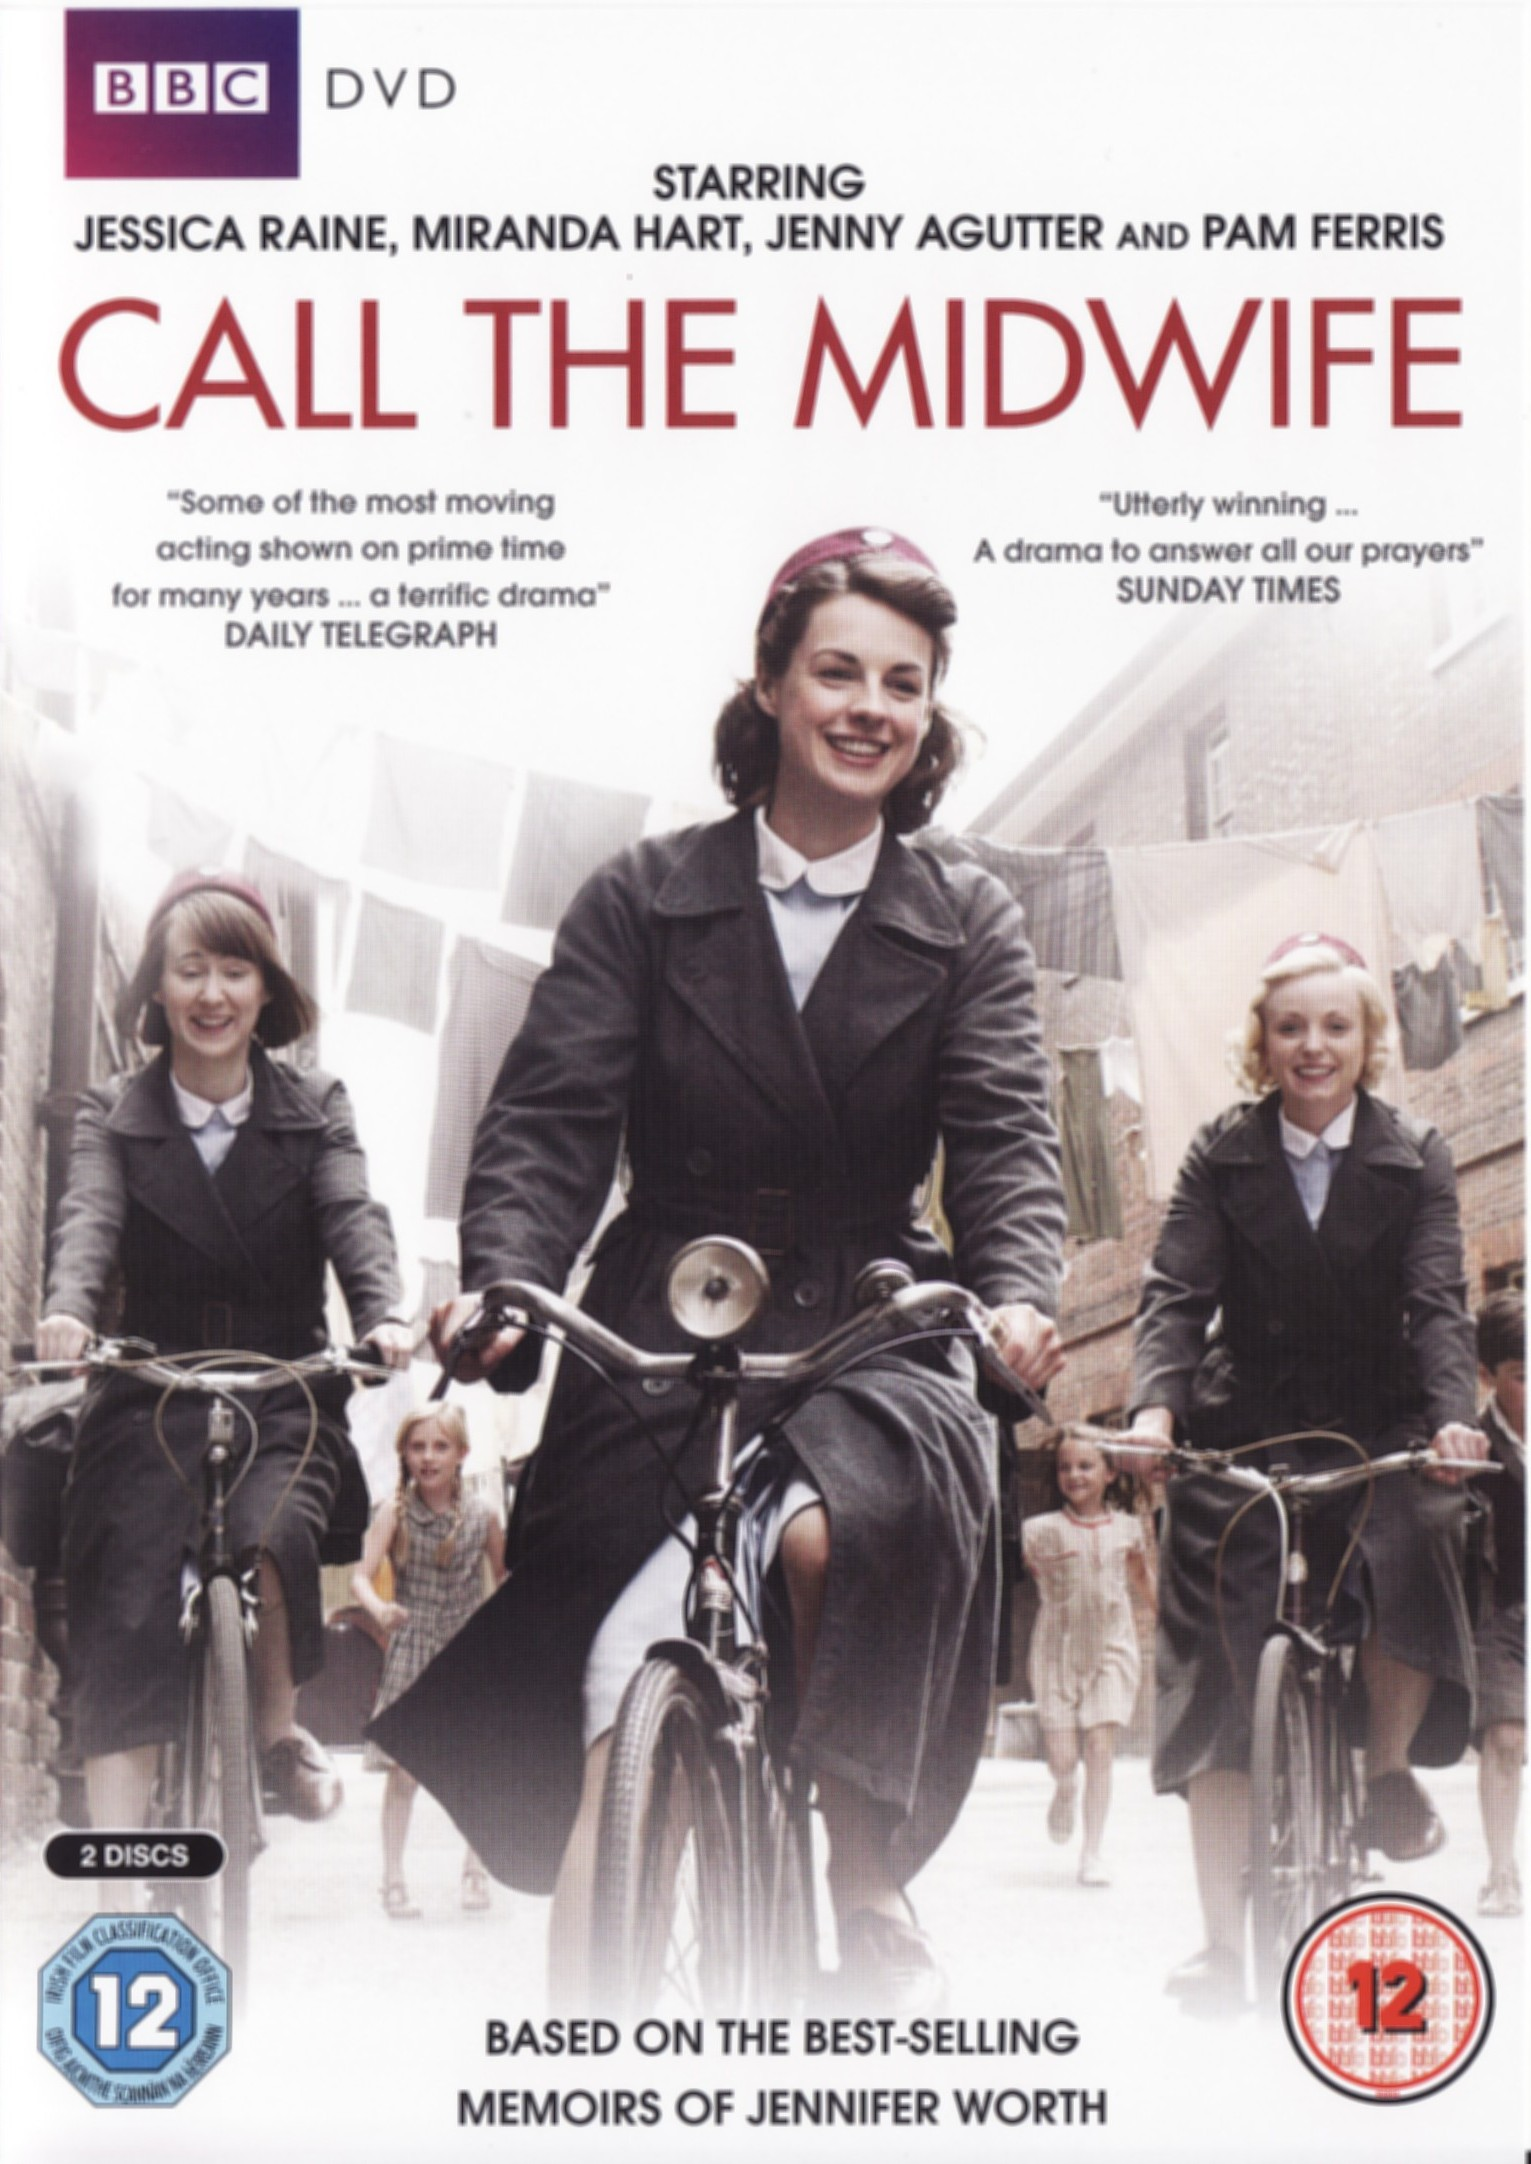 Copy of Call The Midwife